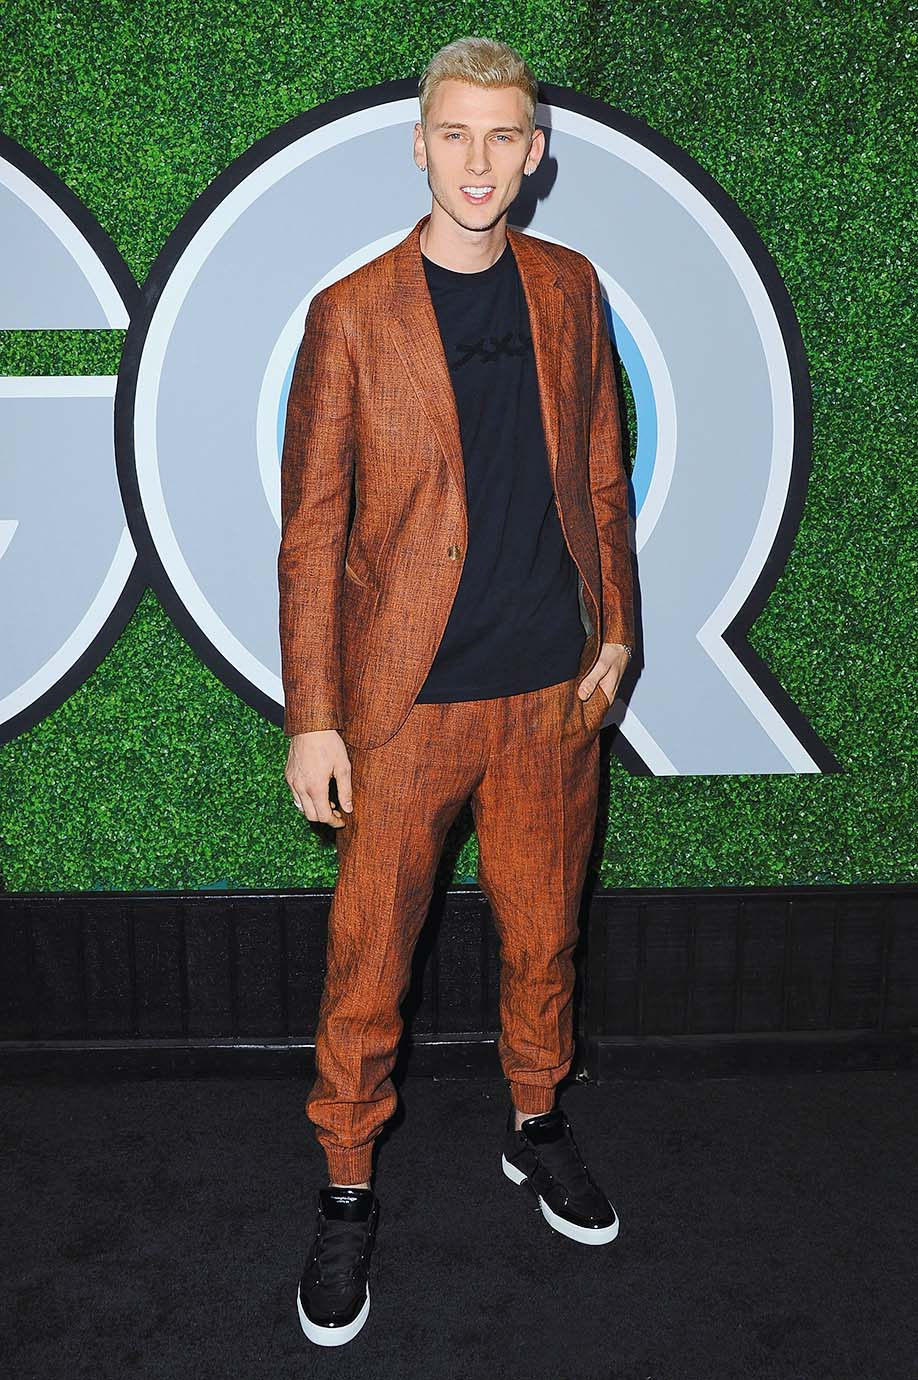 LOS ANGELES, CA - DECEMBER 07:  Machine Gun Kelly attends the 2017 GQ Men Of The Year Party at Chateau Marmont on December 7, 2017 in Los Angeles, California.  (Photo by Jon Kopaloff/FilmMagic)